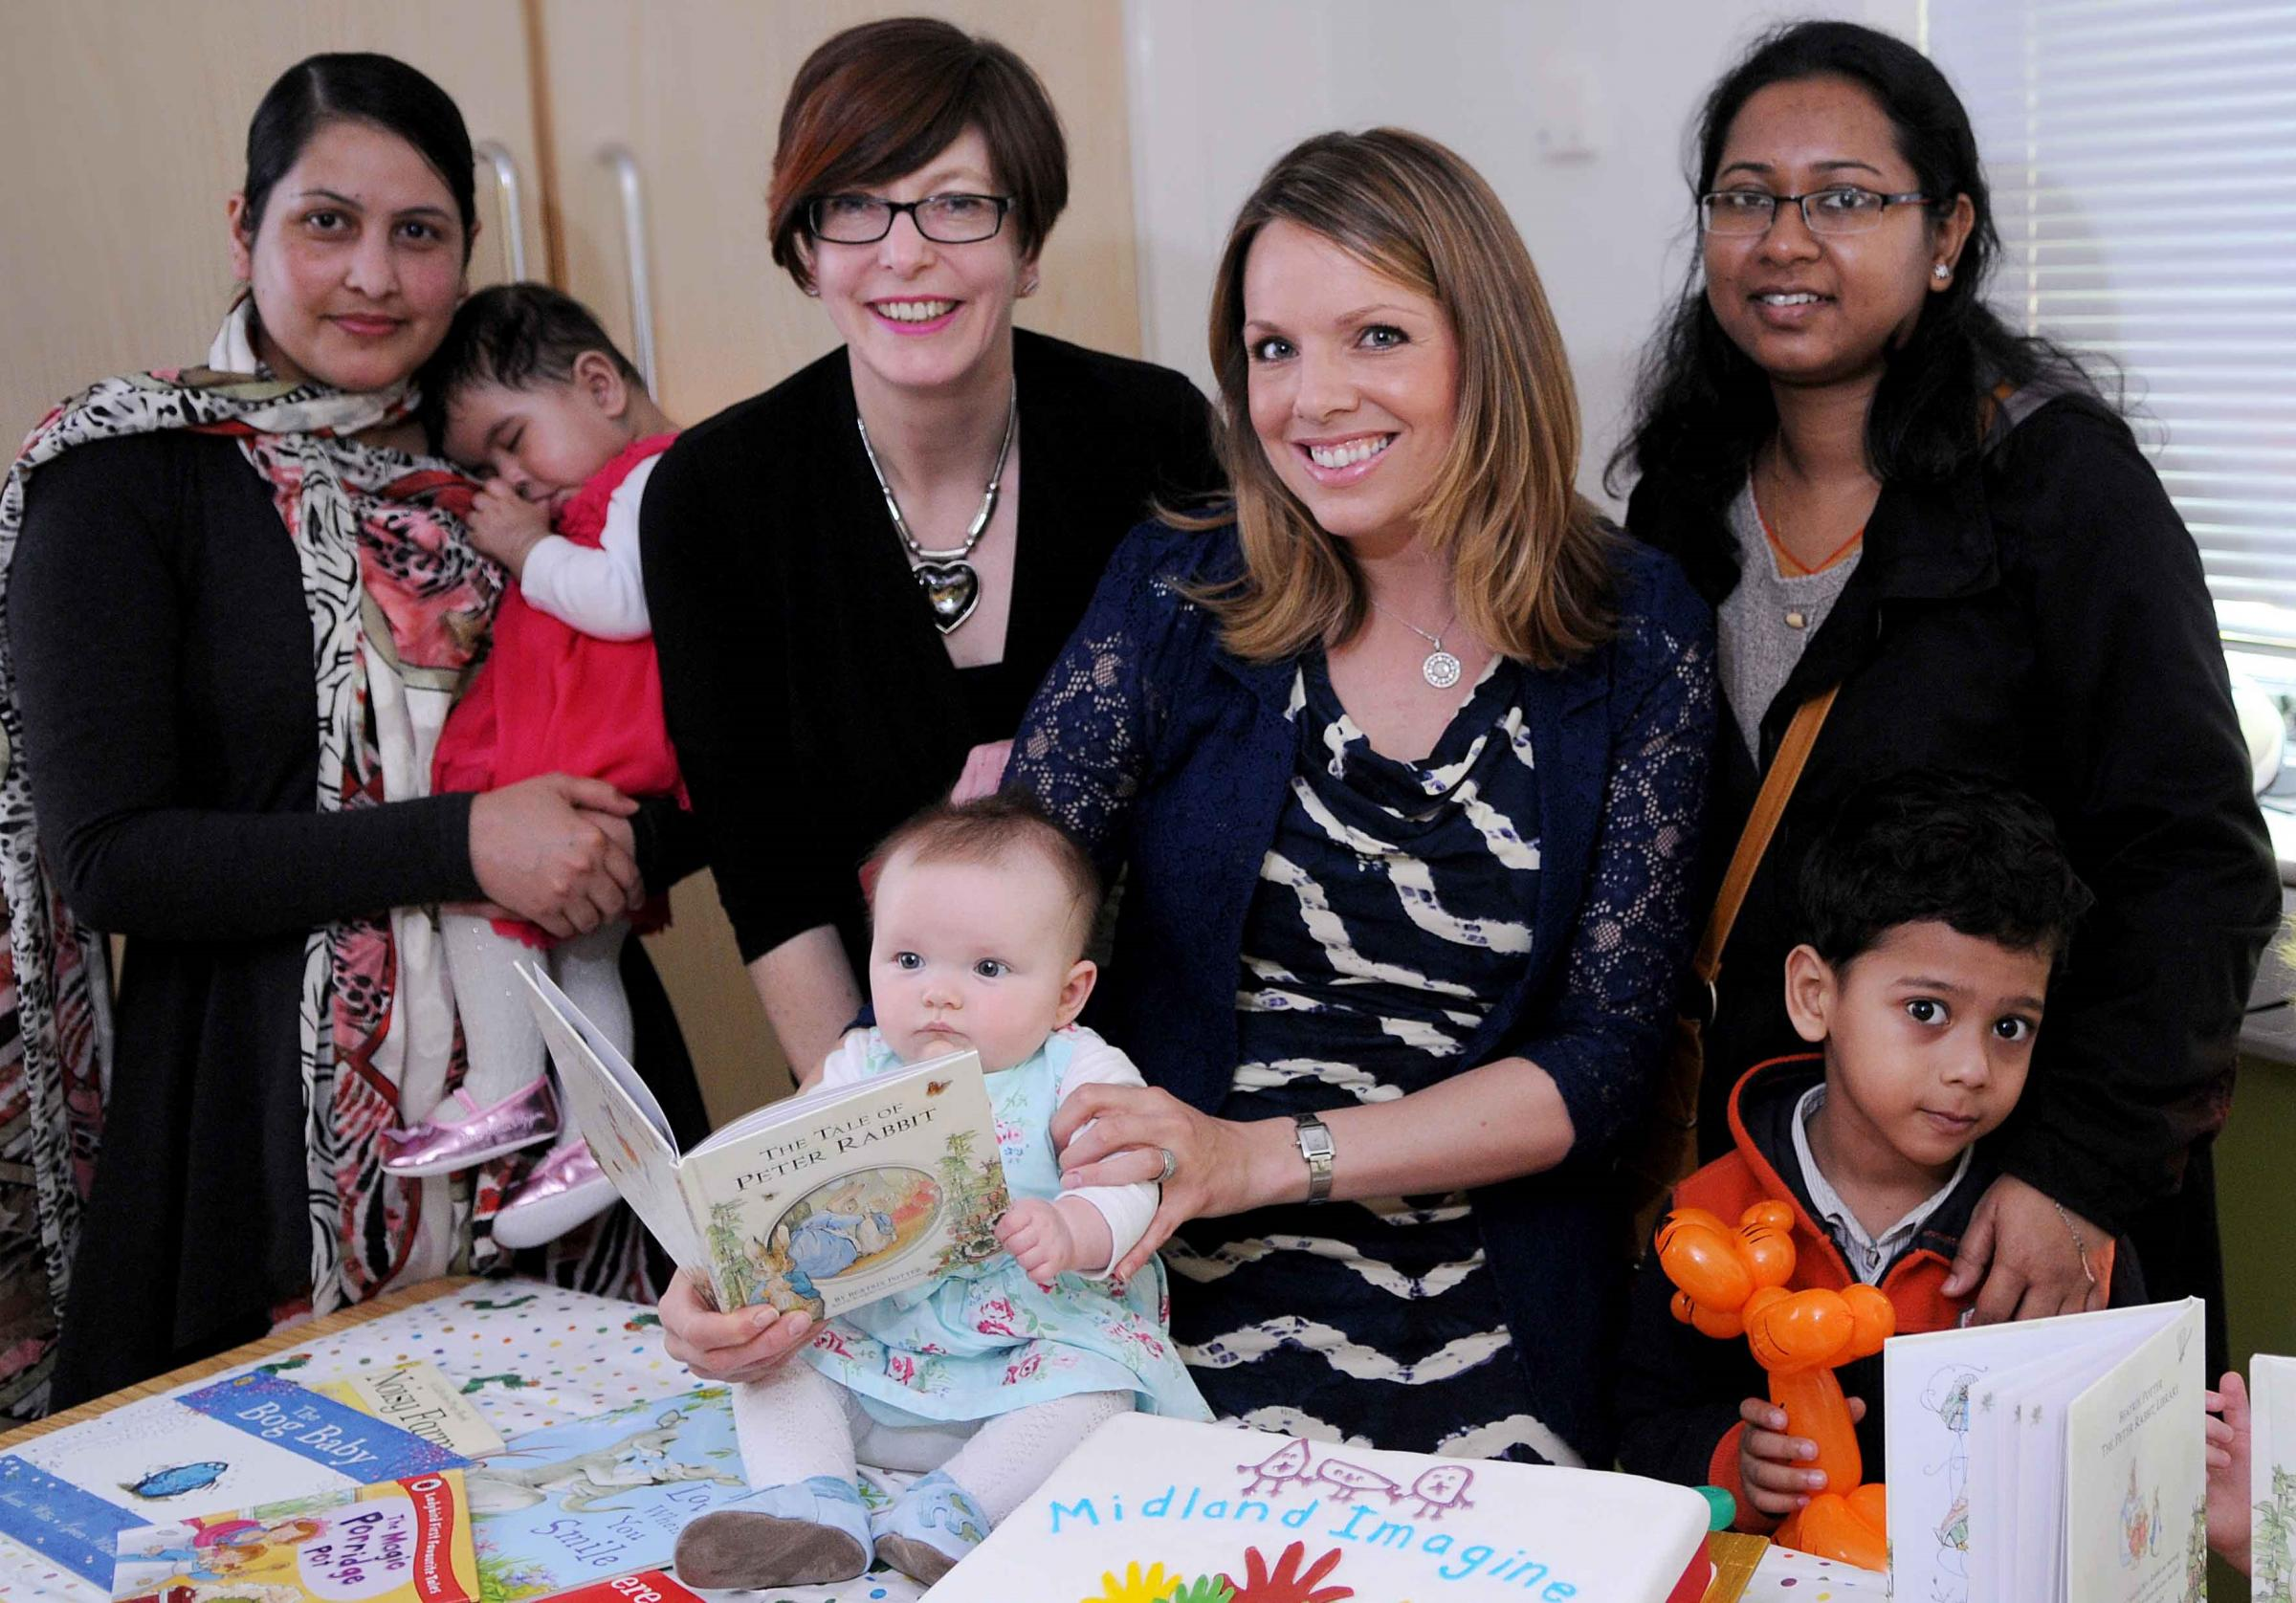 Scheme founder Jan Winter (second adult from left) is joined by mums including TV news presenter Nicola Rees (second adult from right) at the launch of the Midland Road books projec